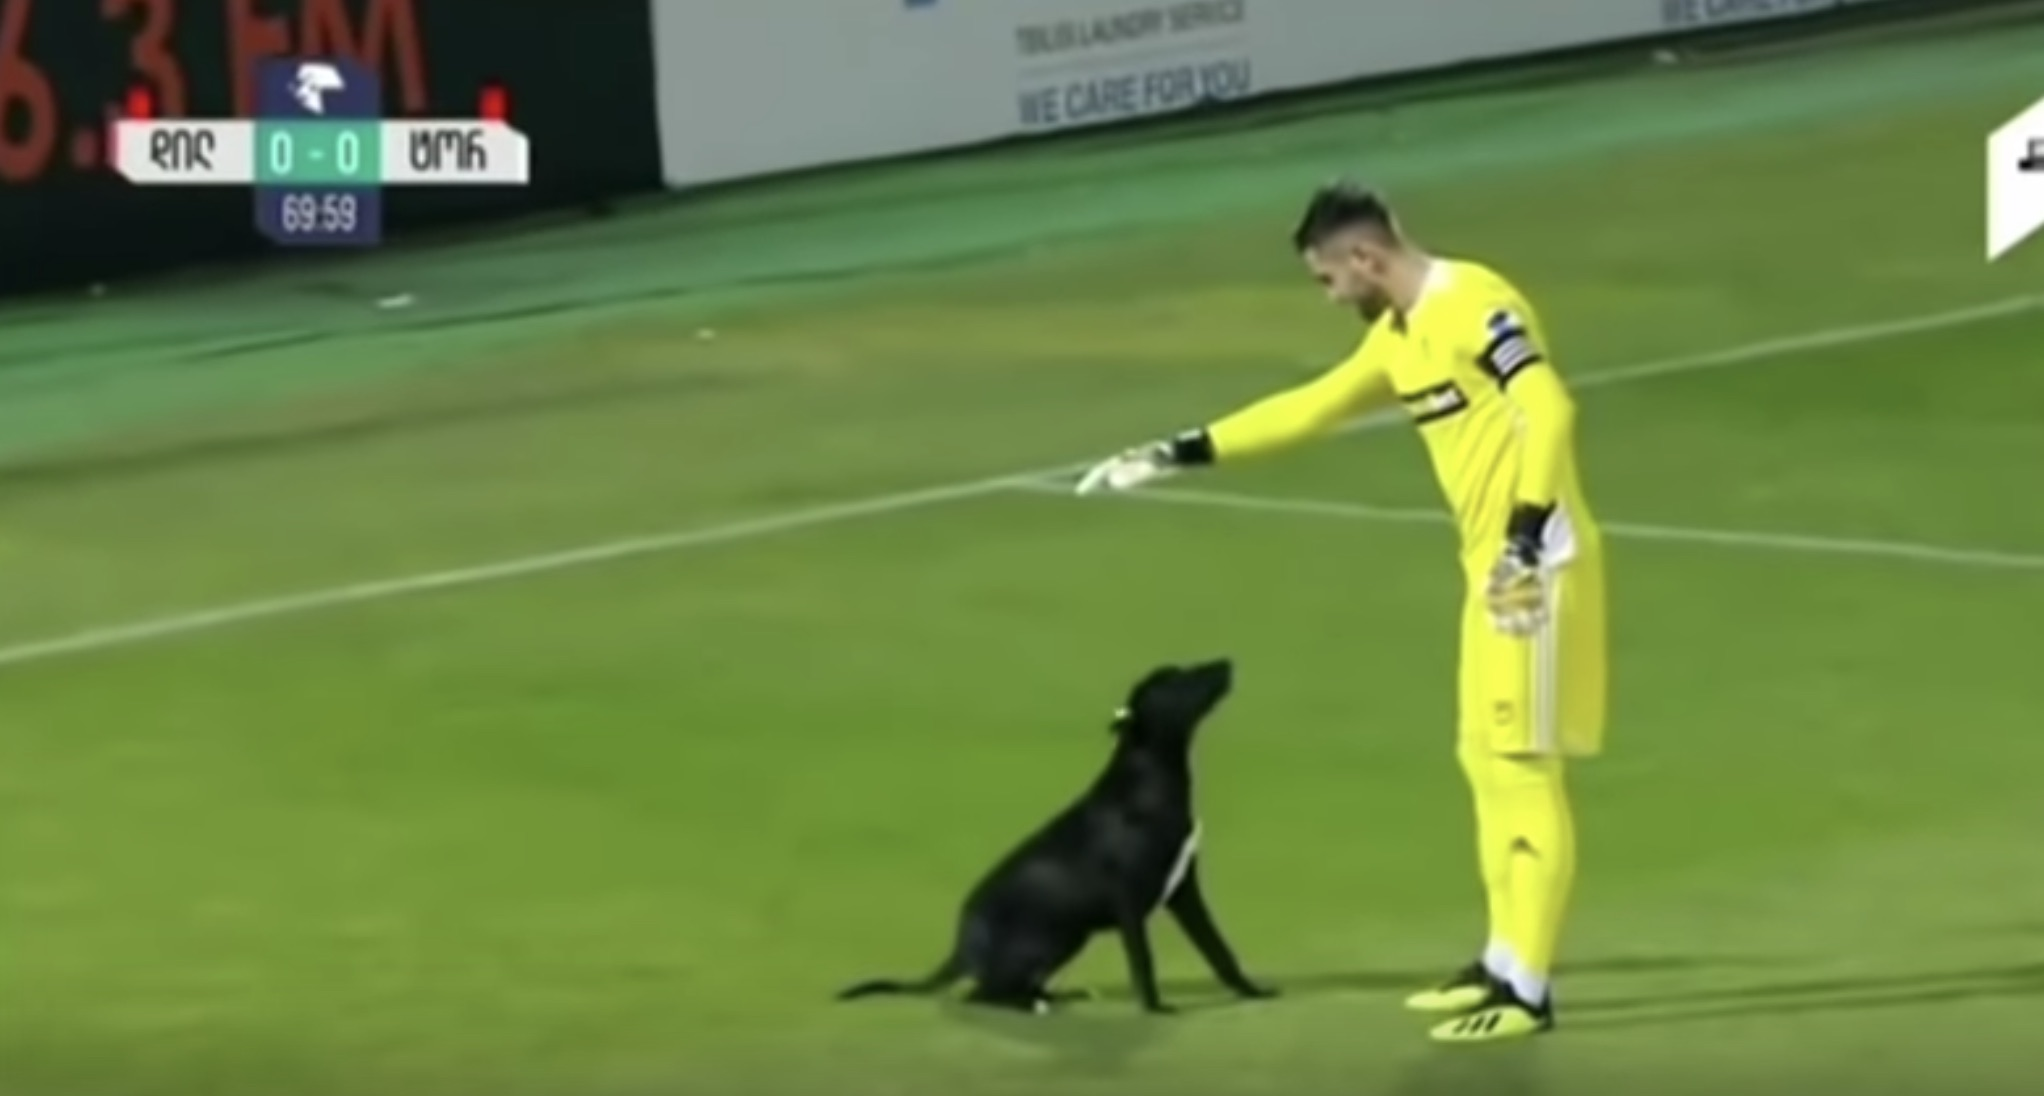 Dog wanders into professional soccer match for belly rubs, video is everything